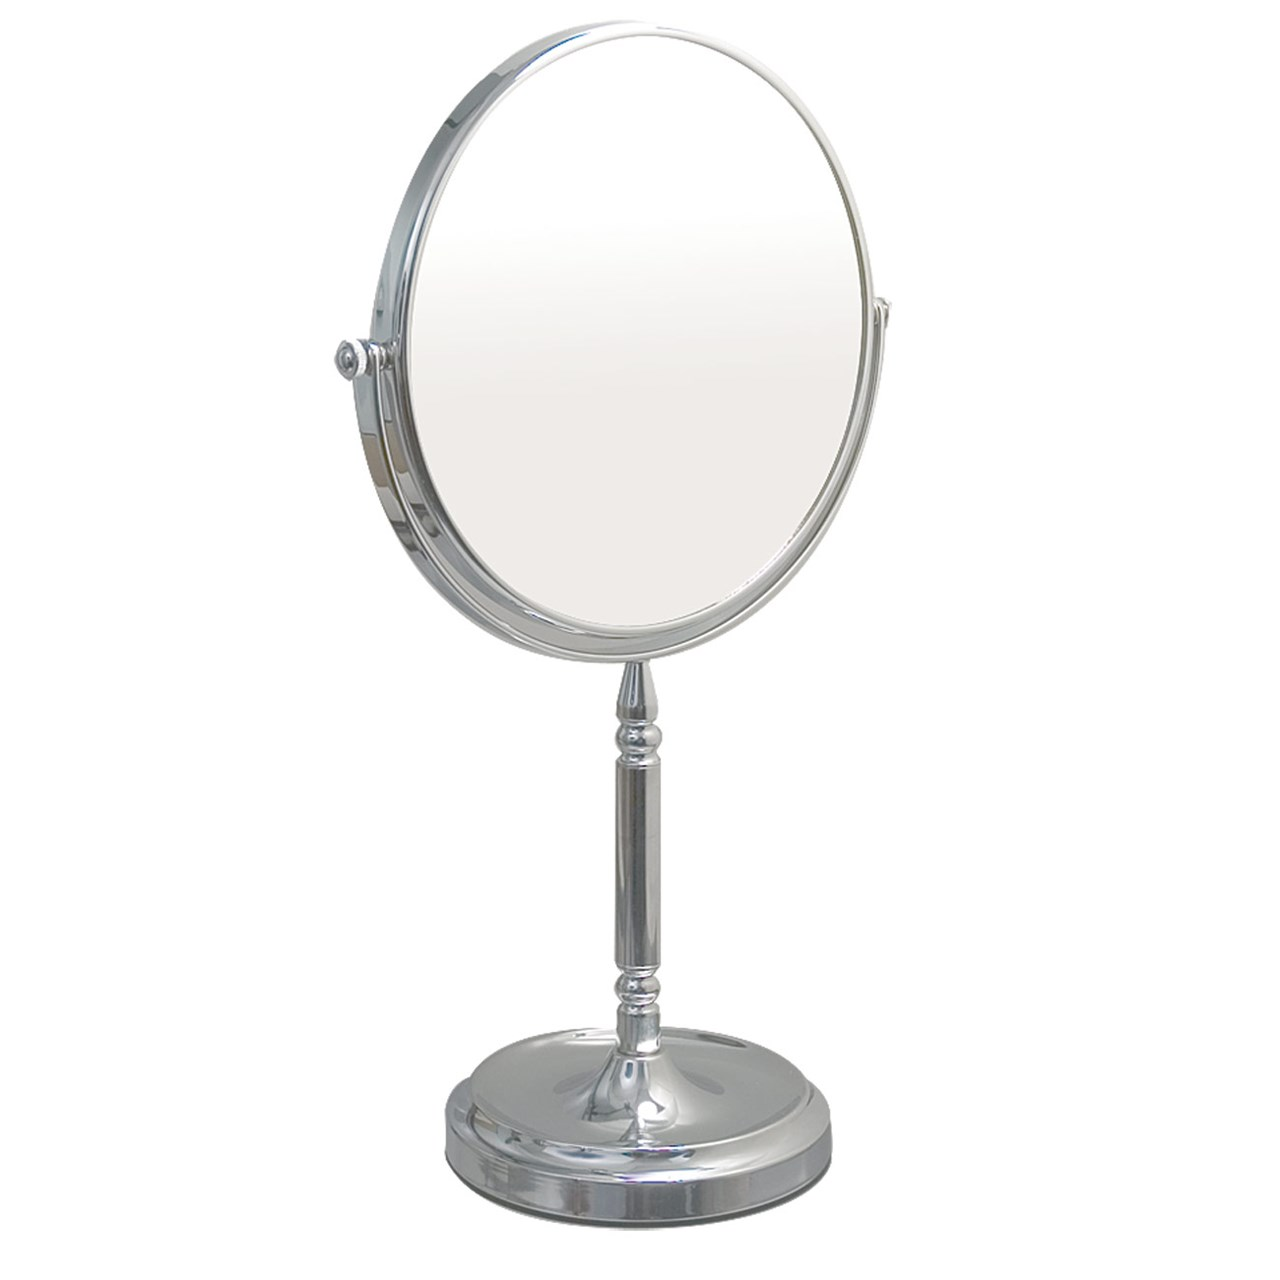 mirror on a stand vanity. MaxiAids Tall Vanity Stand Chrome Mirror With Recessed Base On  Home Design Mannahatta us